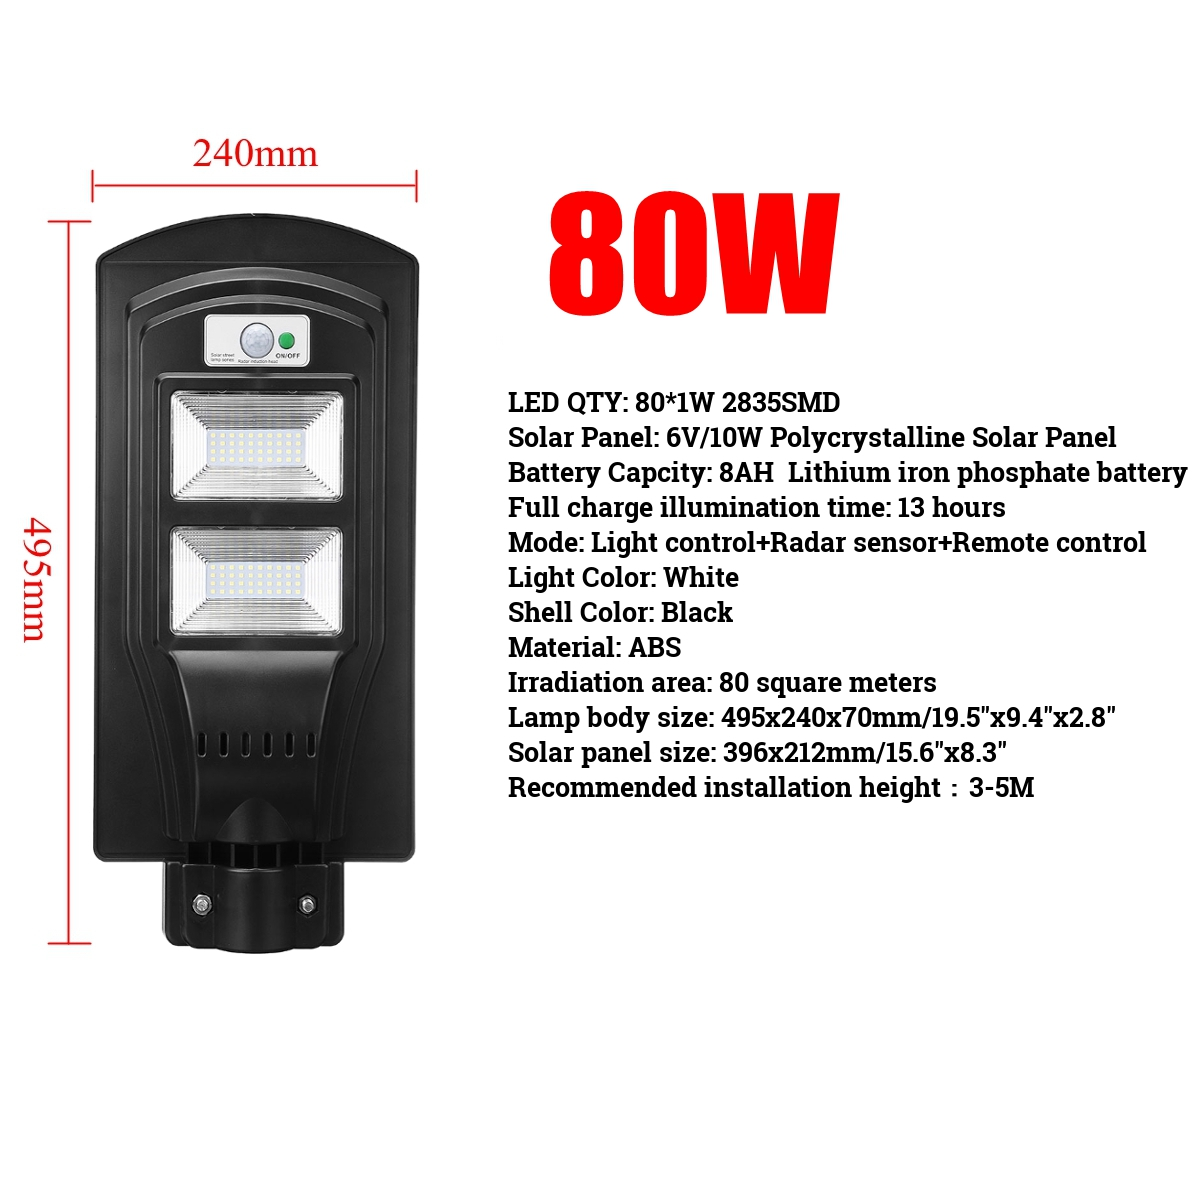 Dropship 40W/80W/120W LED Wall Lamp Solar Street Light 2 In 1 Constantly Bright & Induction Radar PIR Motion Sensor Lamp+remote